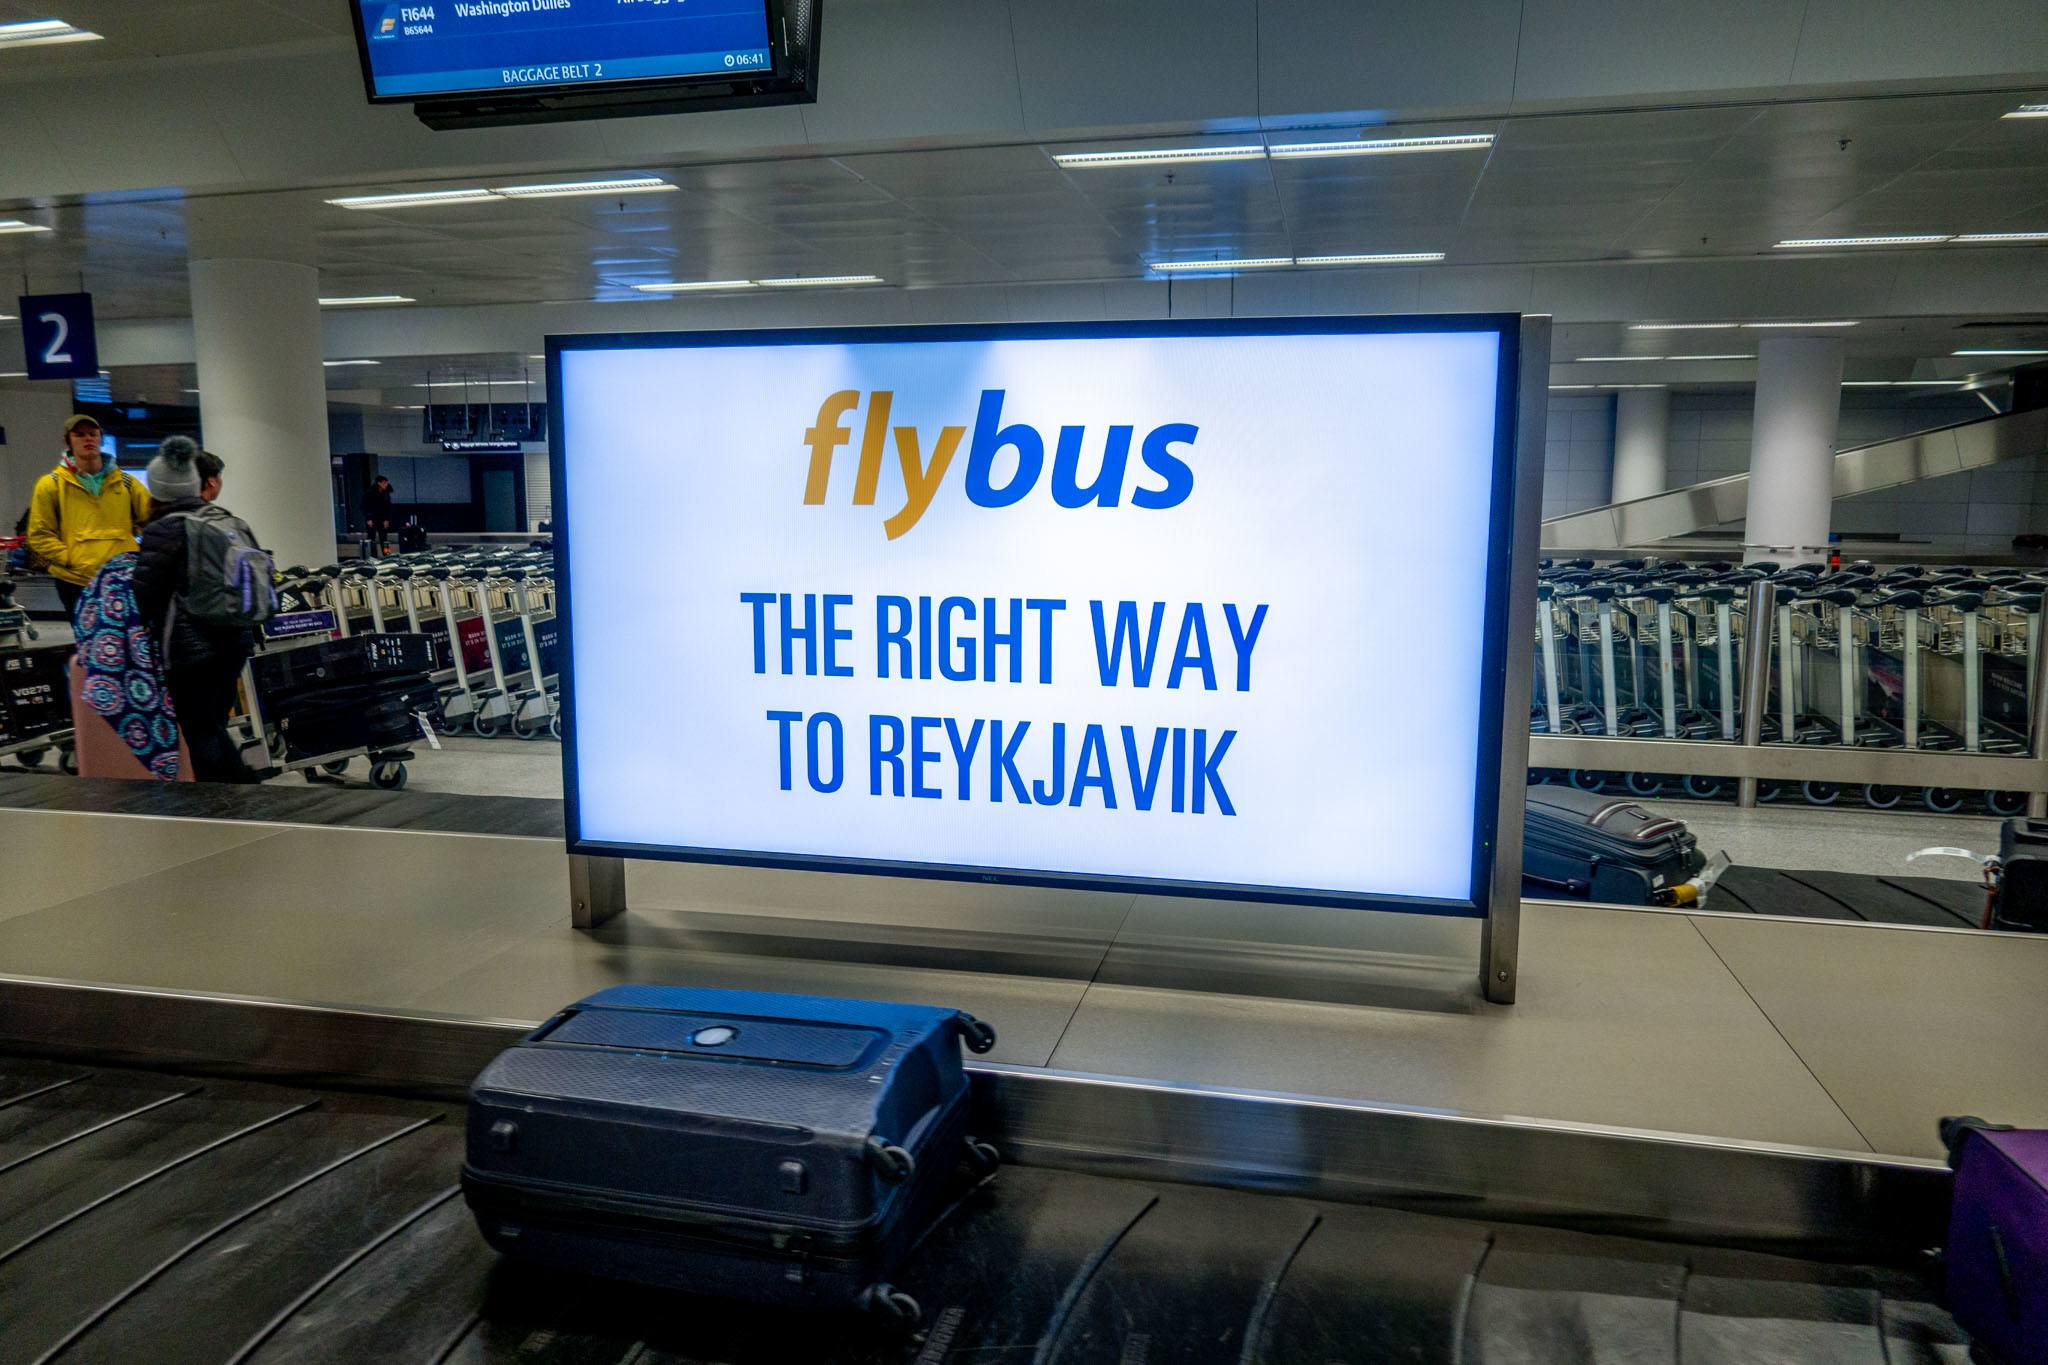 Reykjavik Excursions sign for the Flybus in the baggage claim area at Keflavik airport